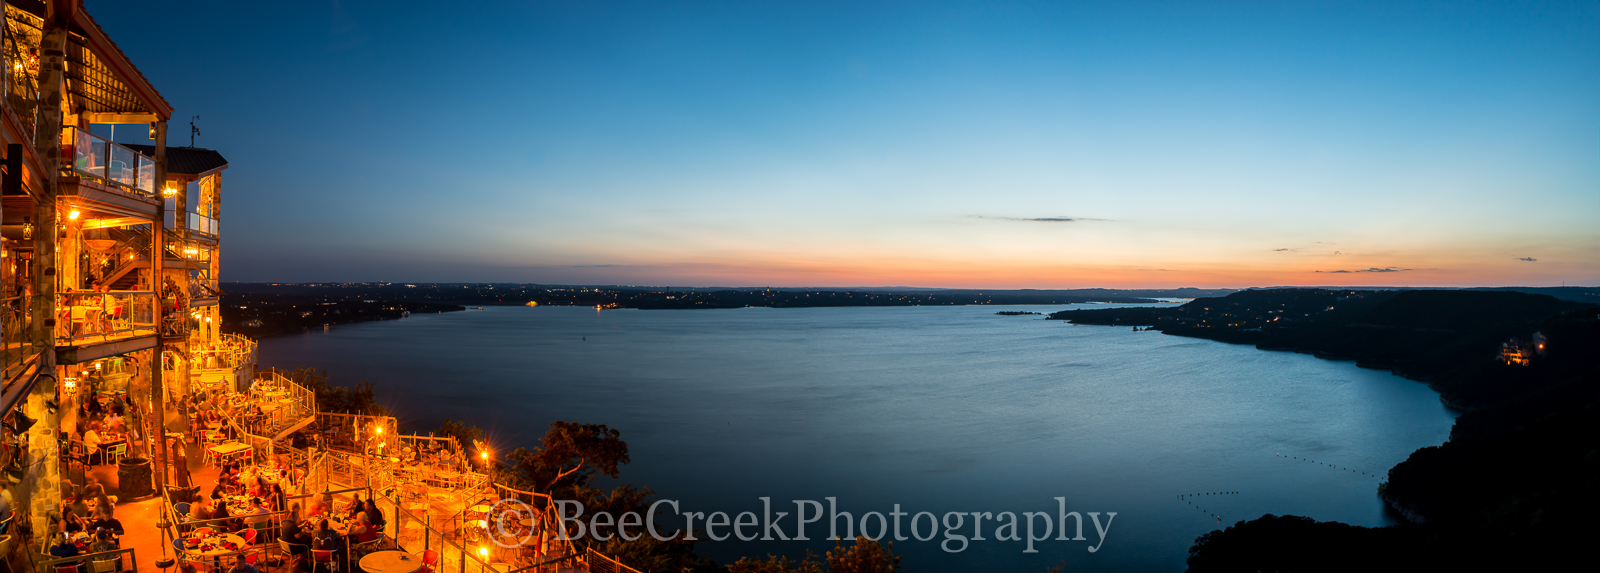 Austin, Hill Country, Lake Travis, Oaisis, TX, boating, dark, destination, drink, fishing, food, lake, landscapes, landscpe, most popular, night, photos, recreation, restaurant, sailing, scenery, scen, photo